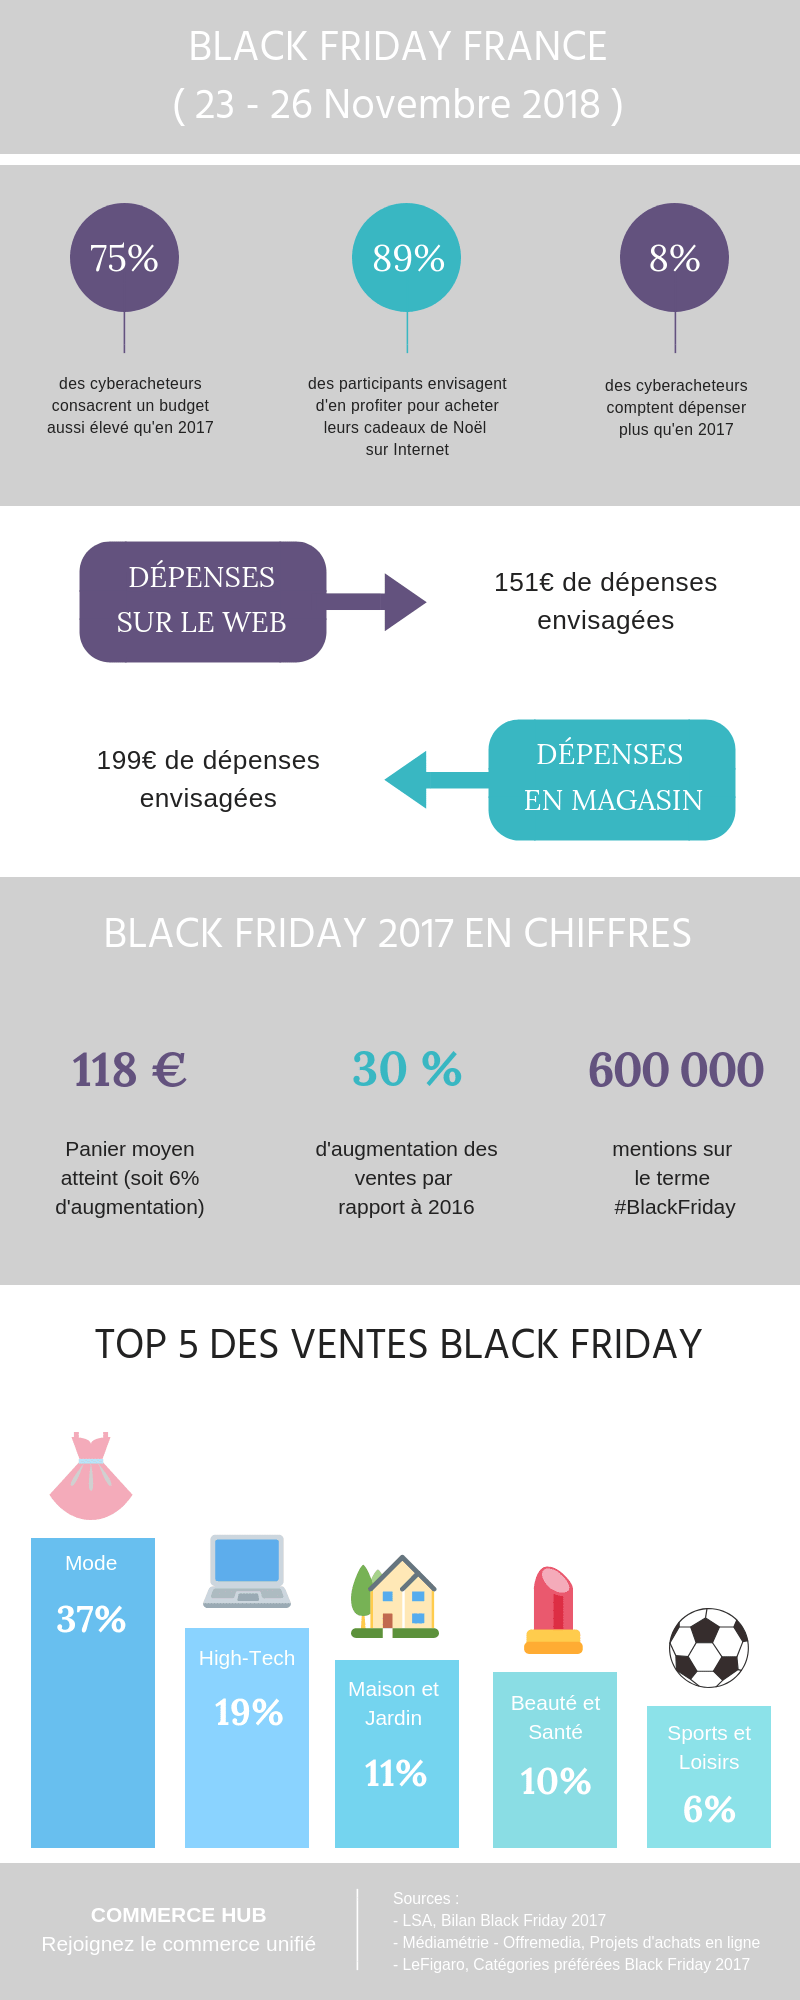 que reserve le Black Friday 2018 en France?